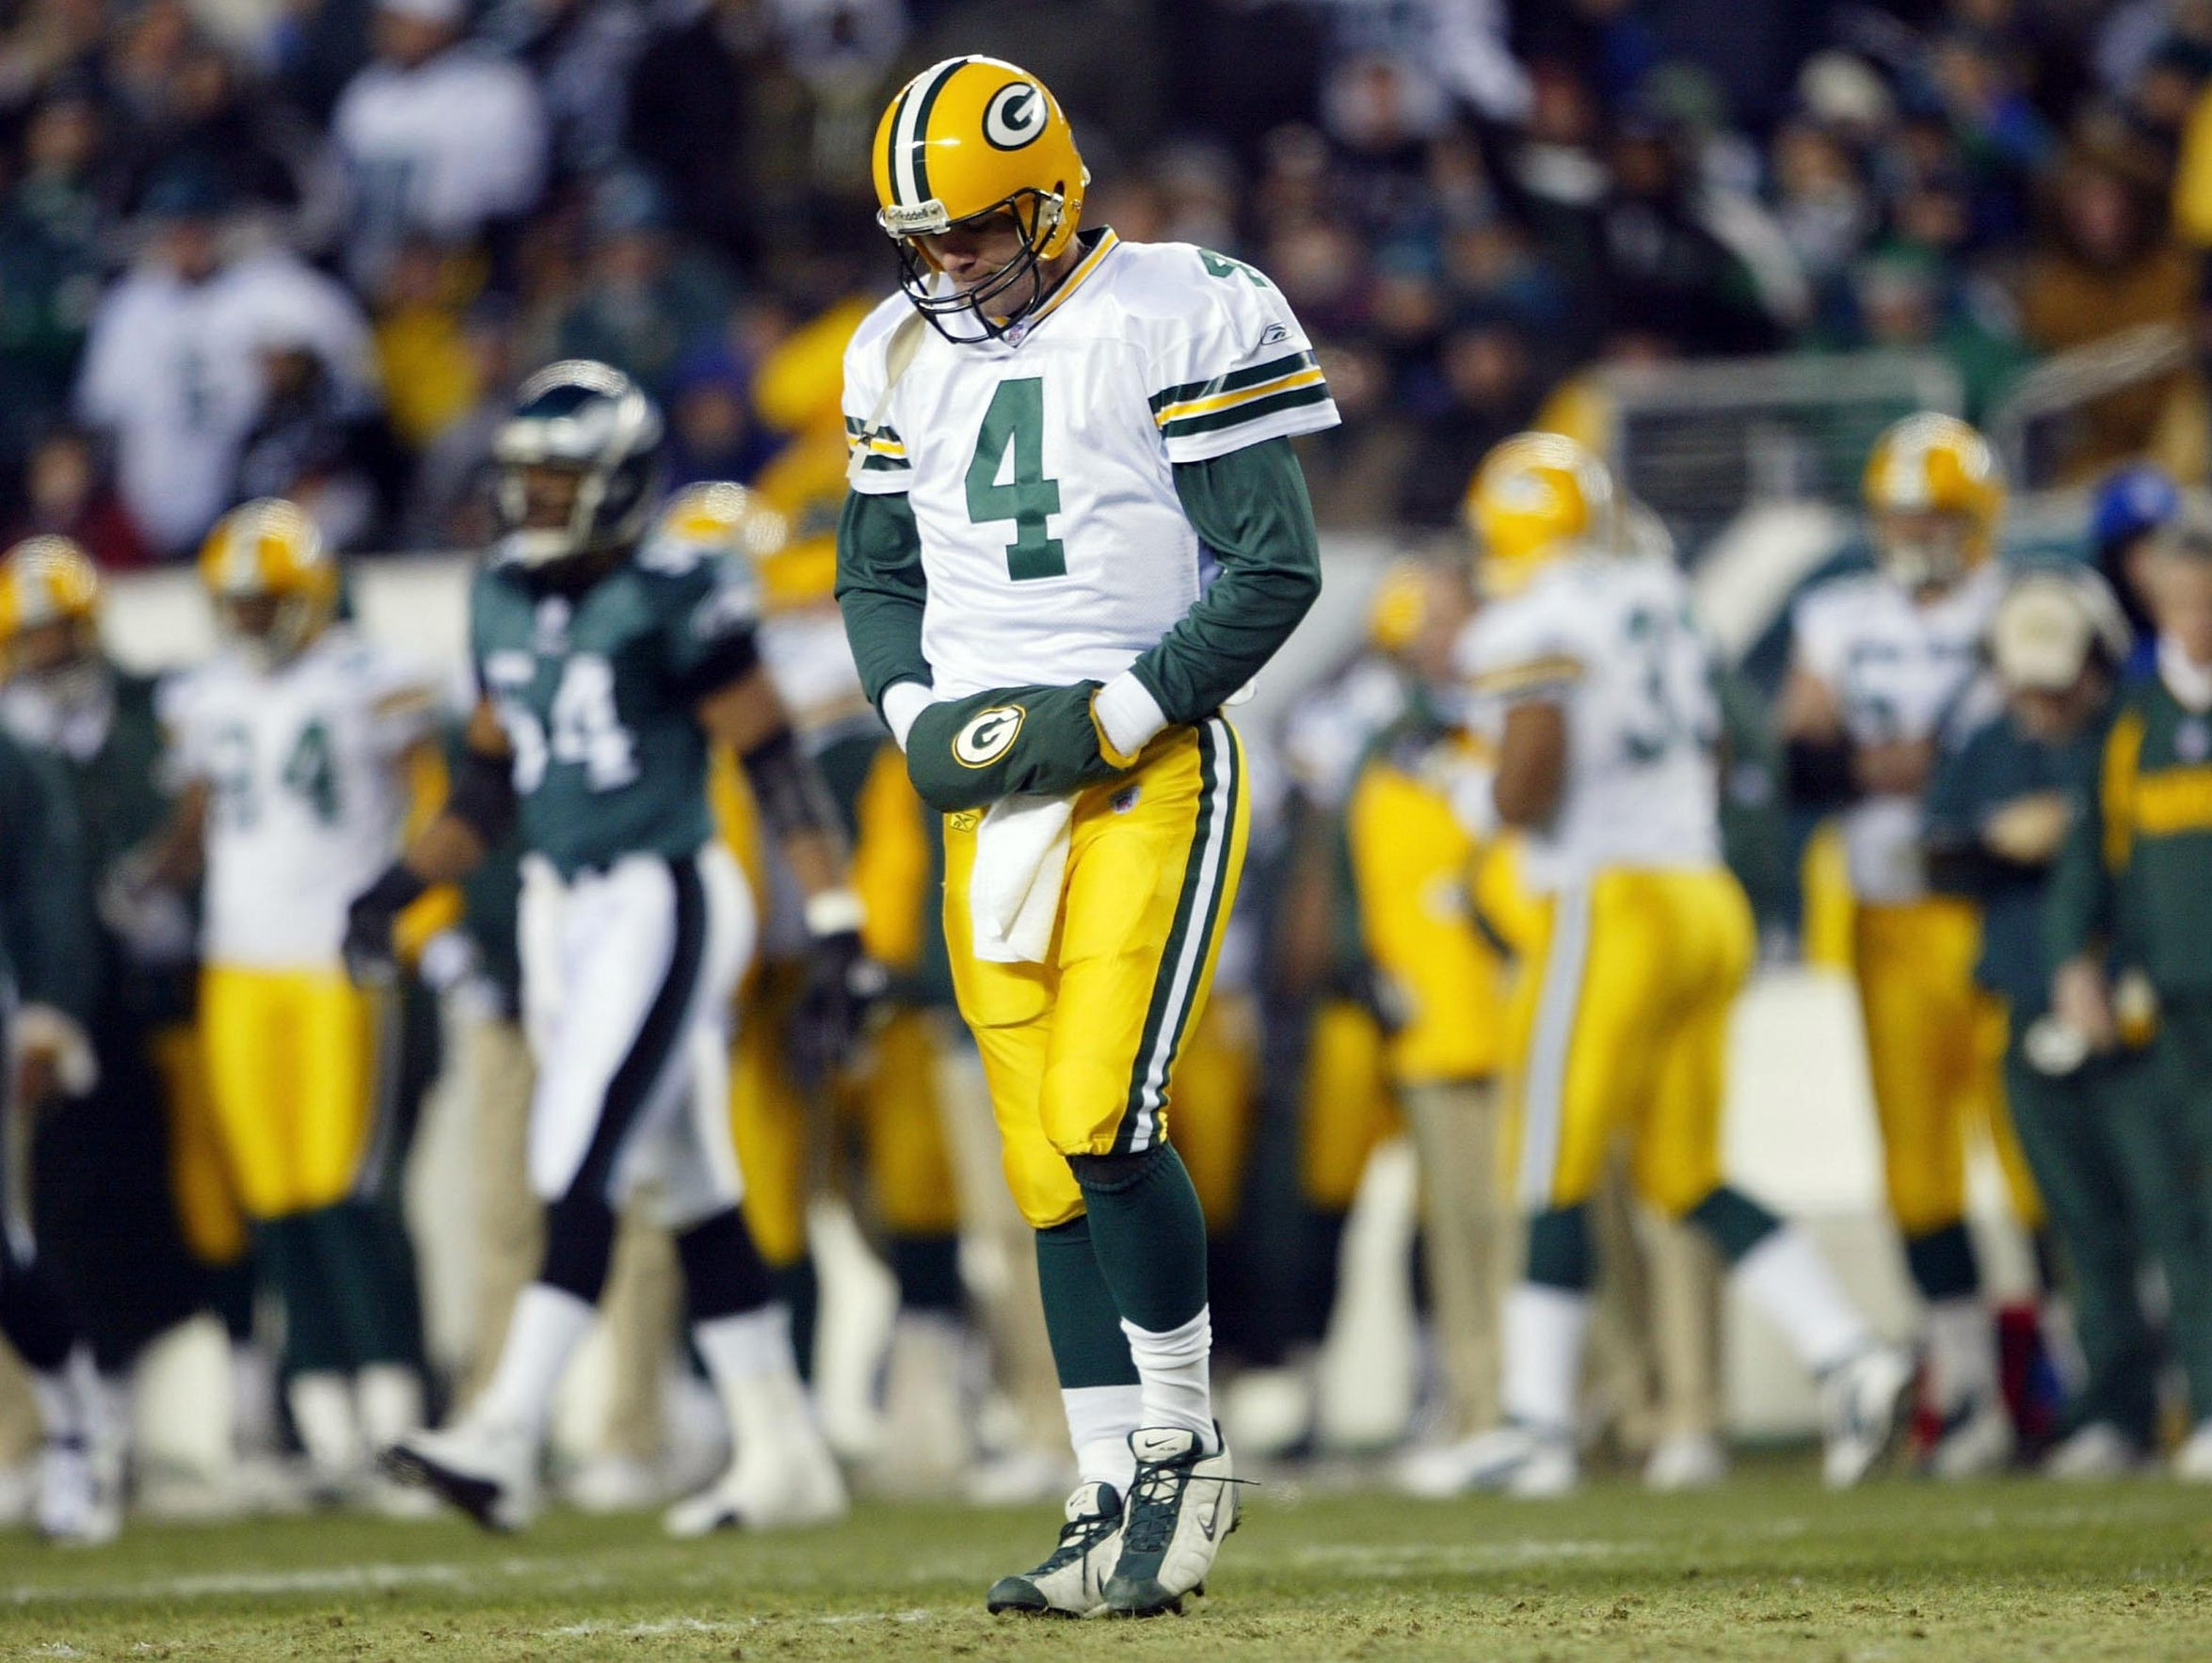 Quarterback Brett Favre hangs his head as he walks